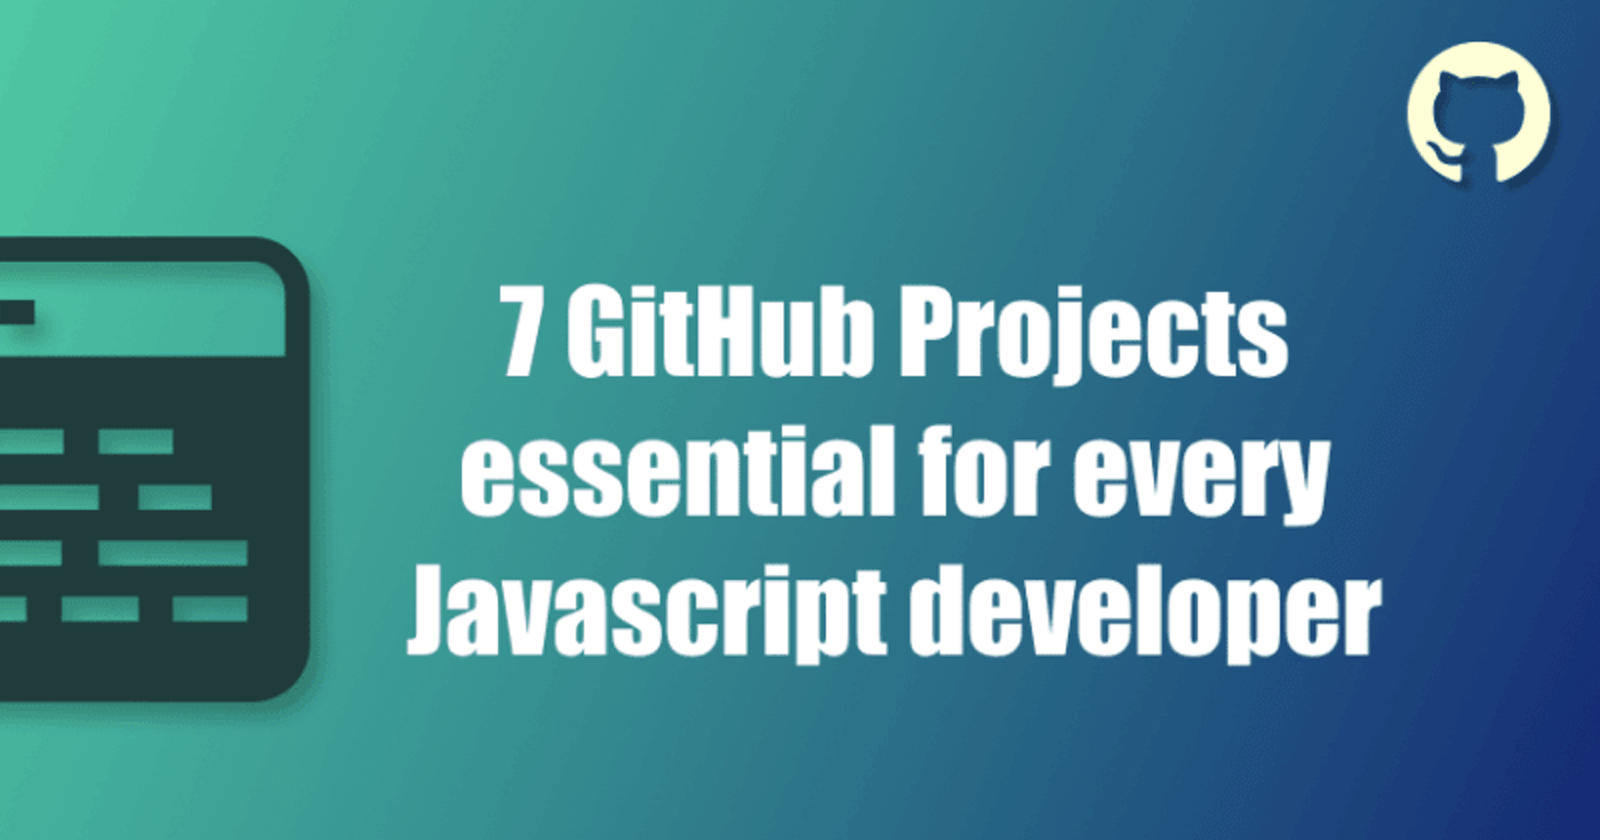 7 GitHub projects essential for every Javascript developer 👨🏽💻 🚀